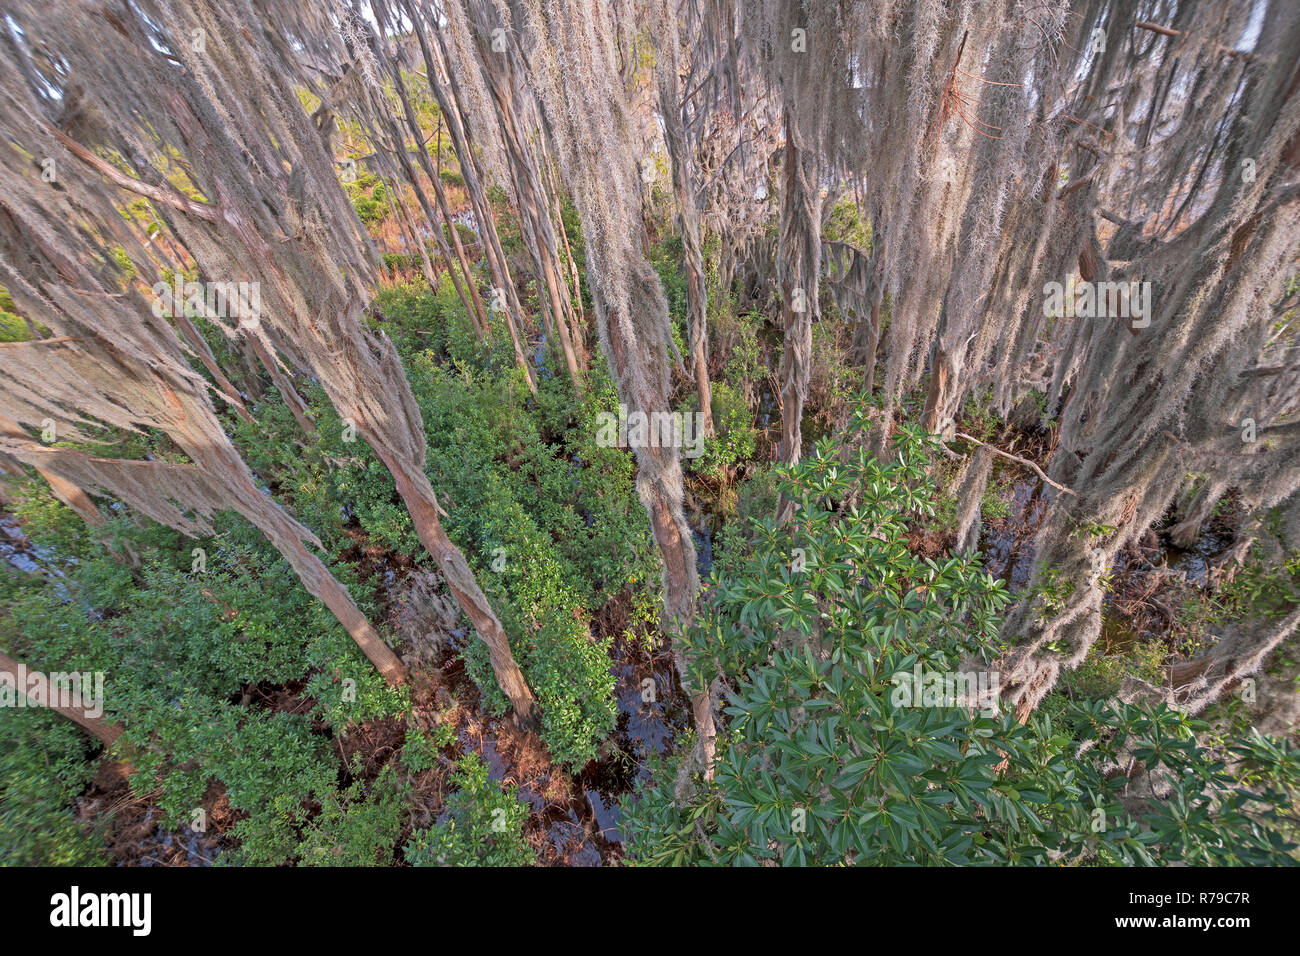 Looking Down in the Spanish Moss of a Cypress Swamp - Stock Image